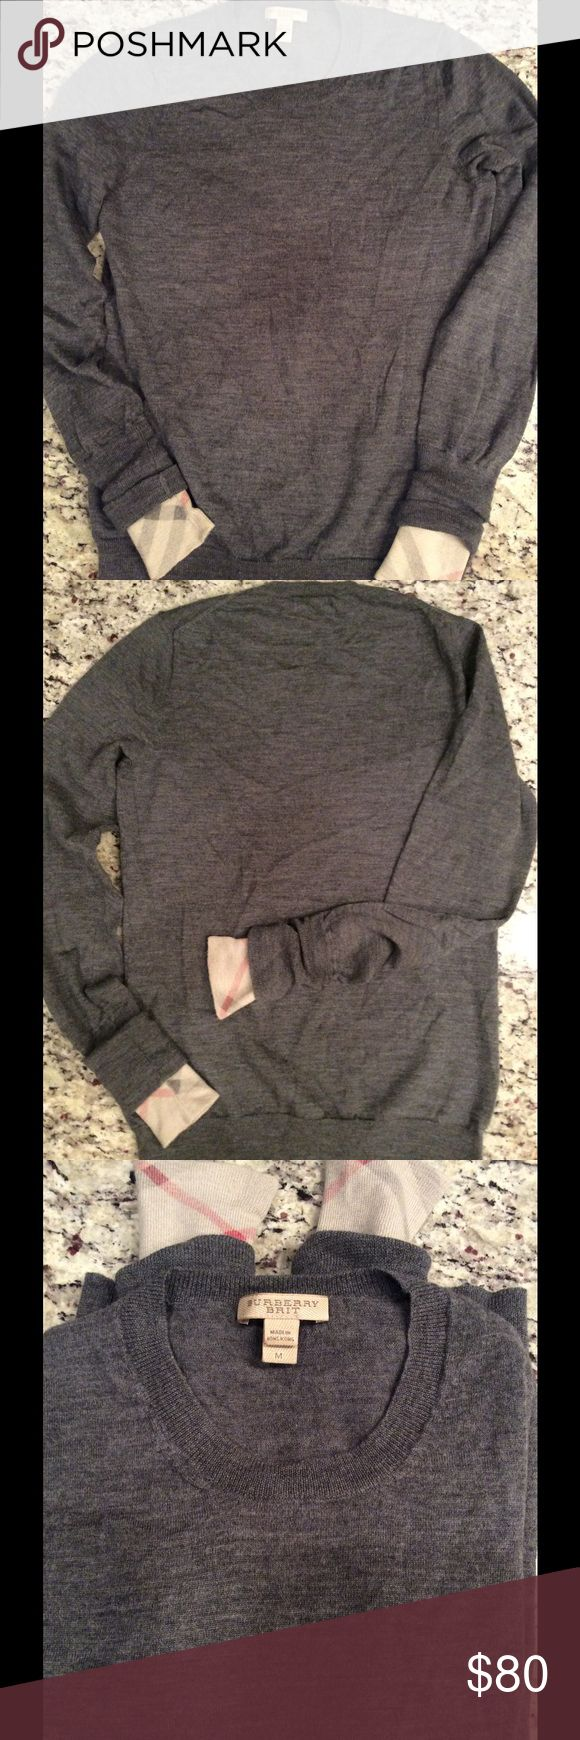 "-Burberry Brit- 100% Extra Fine Merino Wool Sz M Really cute sweater! Used, but good condition. Original Checker pattern in sleeves when rolled or pushed up. 100% Extra Fine Merino Wool. Their Sweaters do run small.  Small amount of unraveling in left armpit, see photo! Neck to hem 22"" armpit to armpit 15"" sleeve 24"" Burberry Sweaters Crew & Scoop Necks"